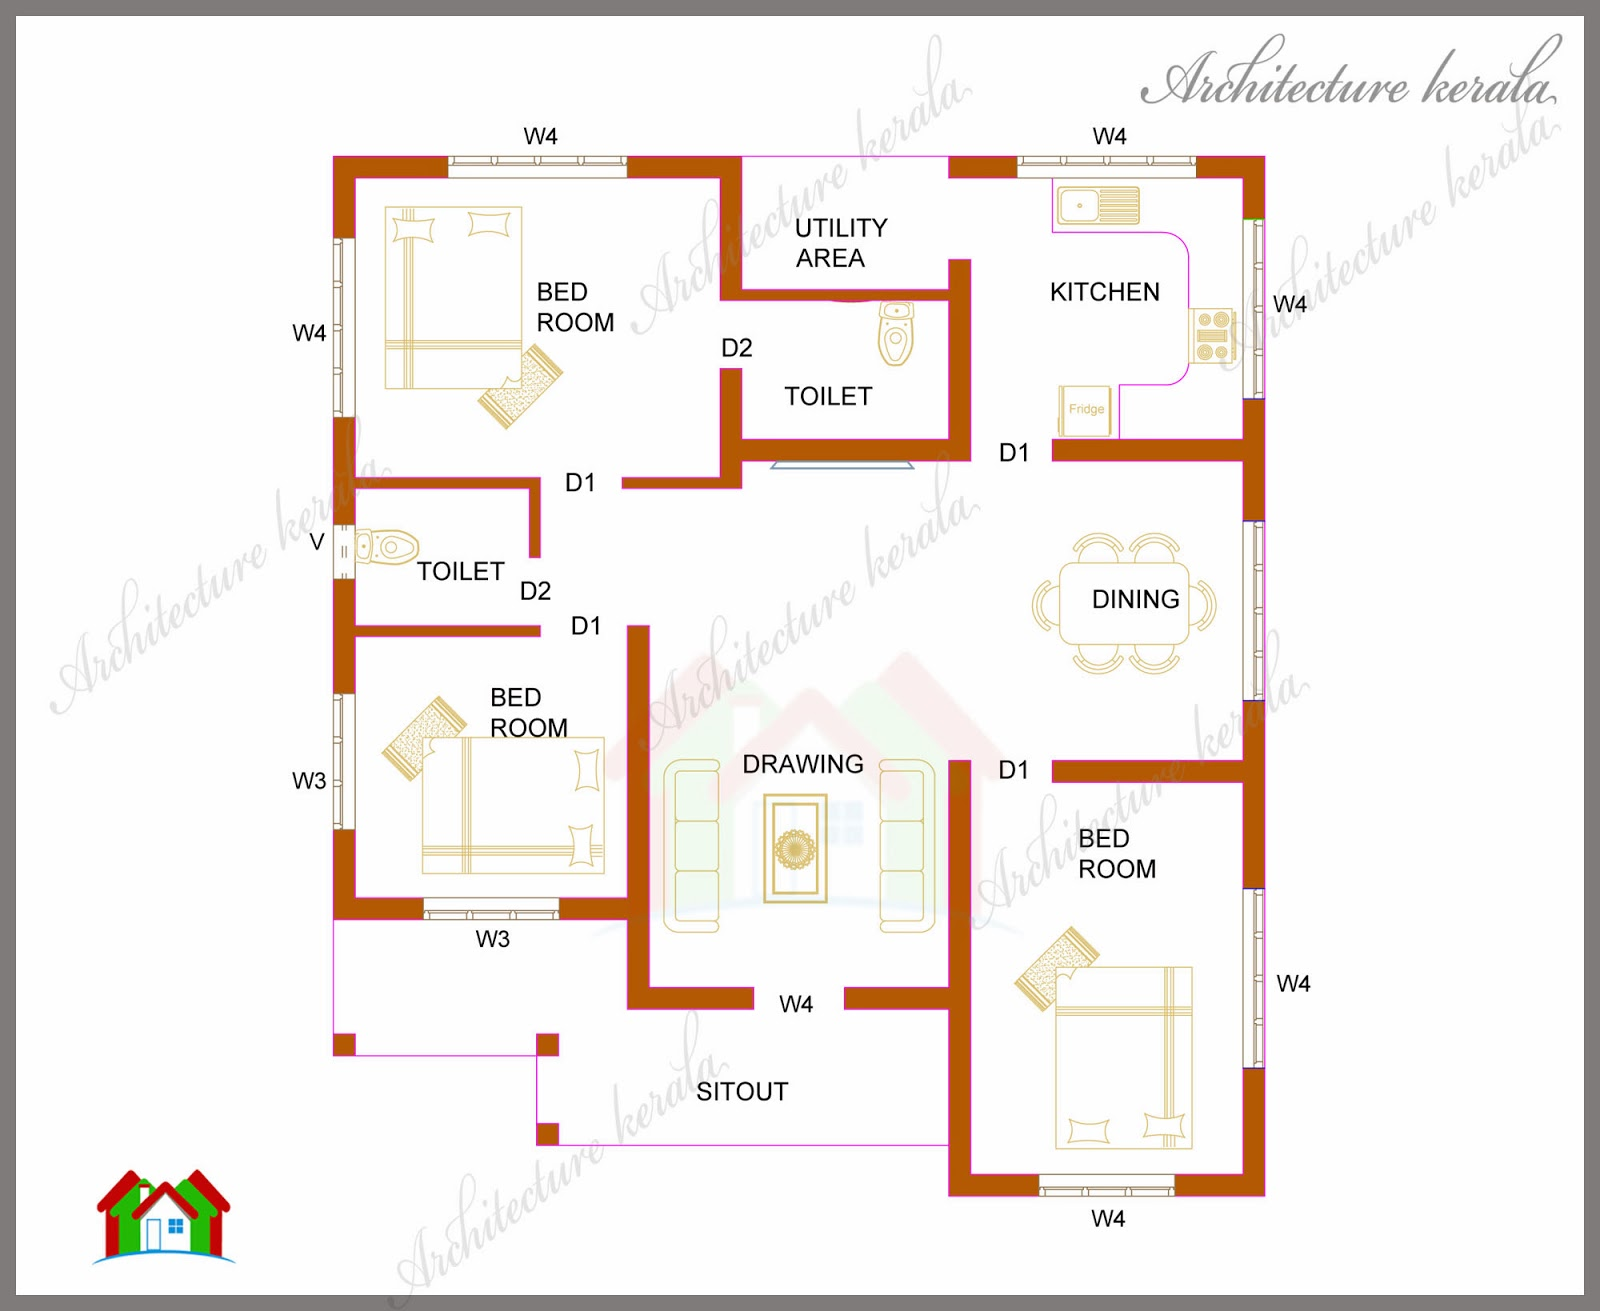 Three bedrooms in 1200 square feet kerala house plan for 4 bedroom house plans kerala style architect